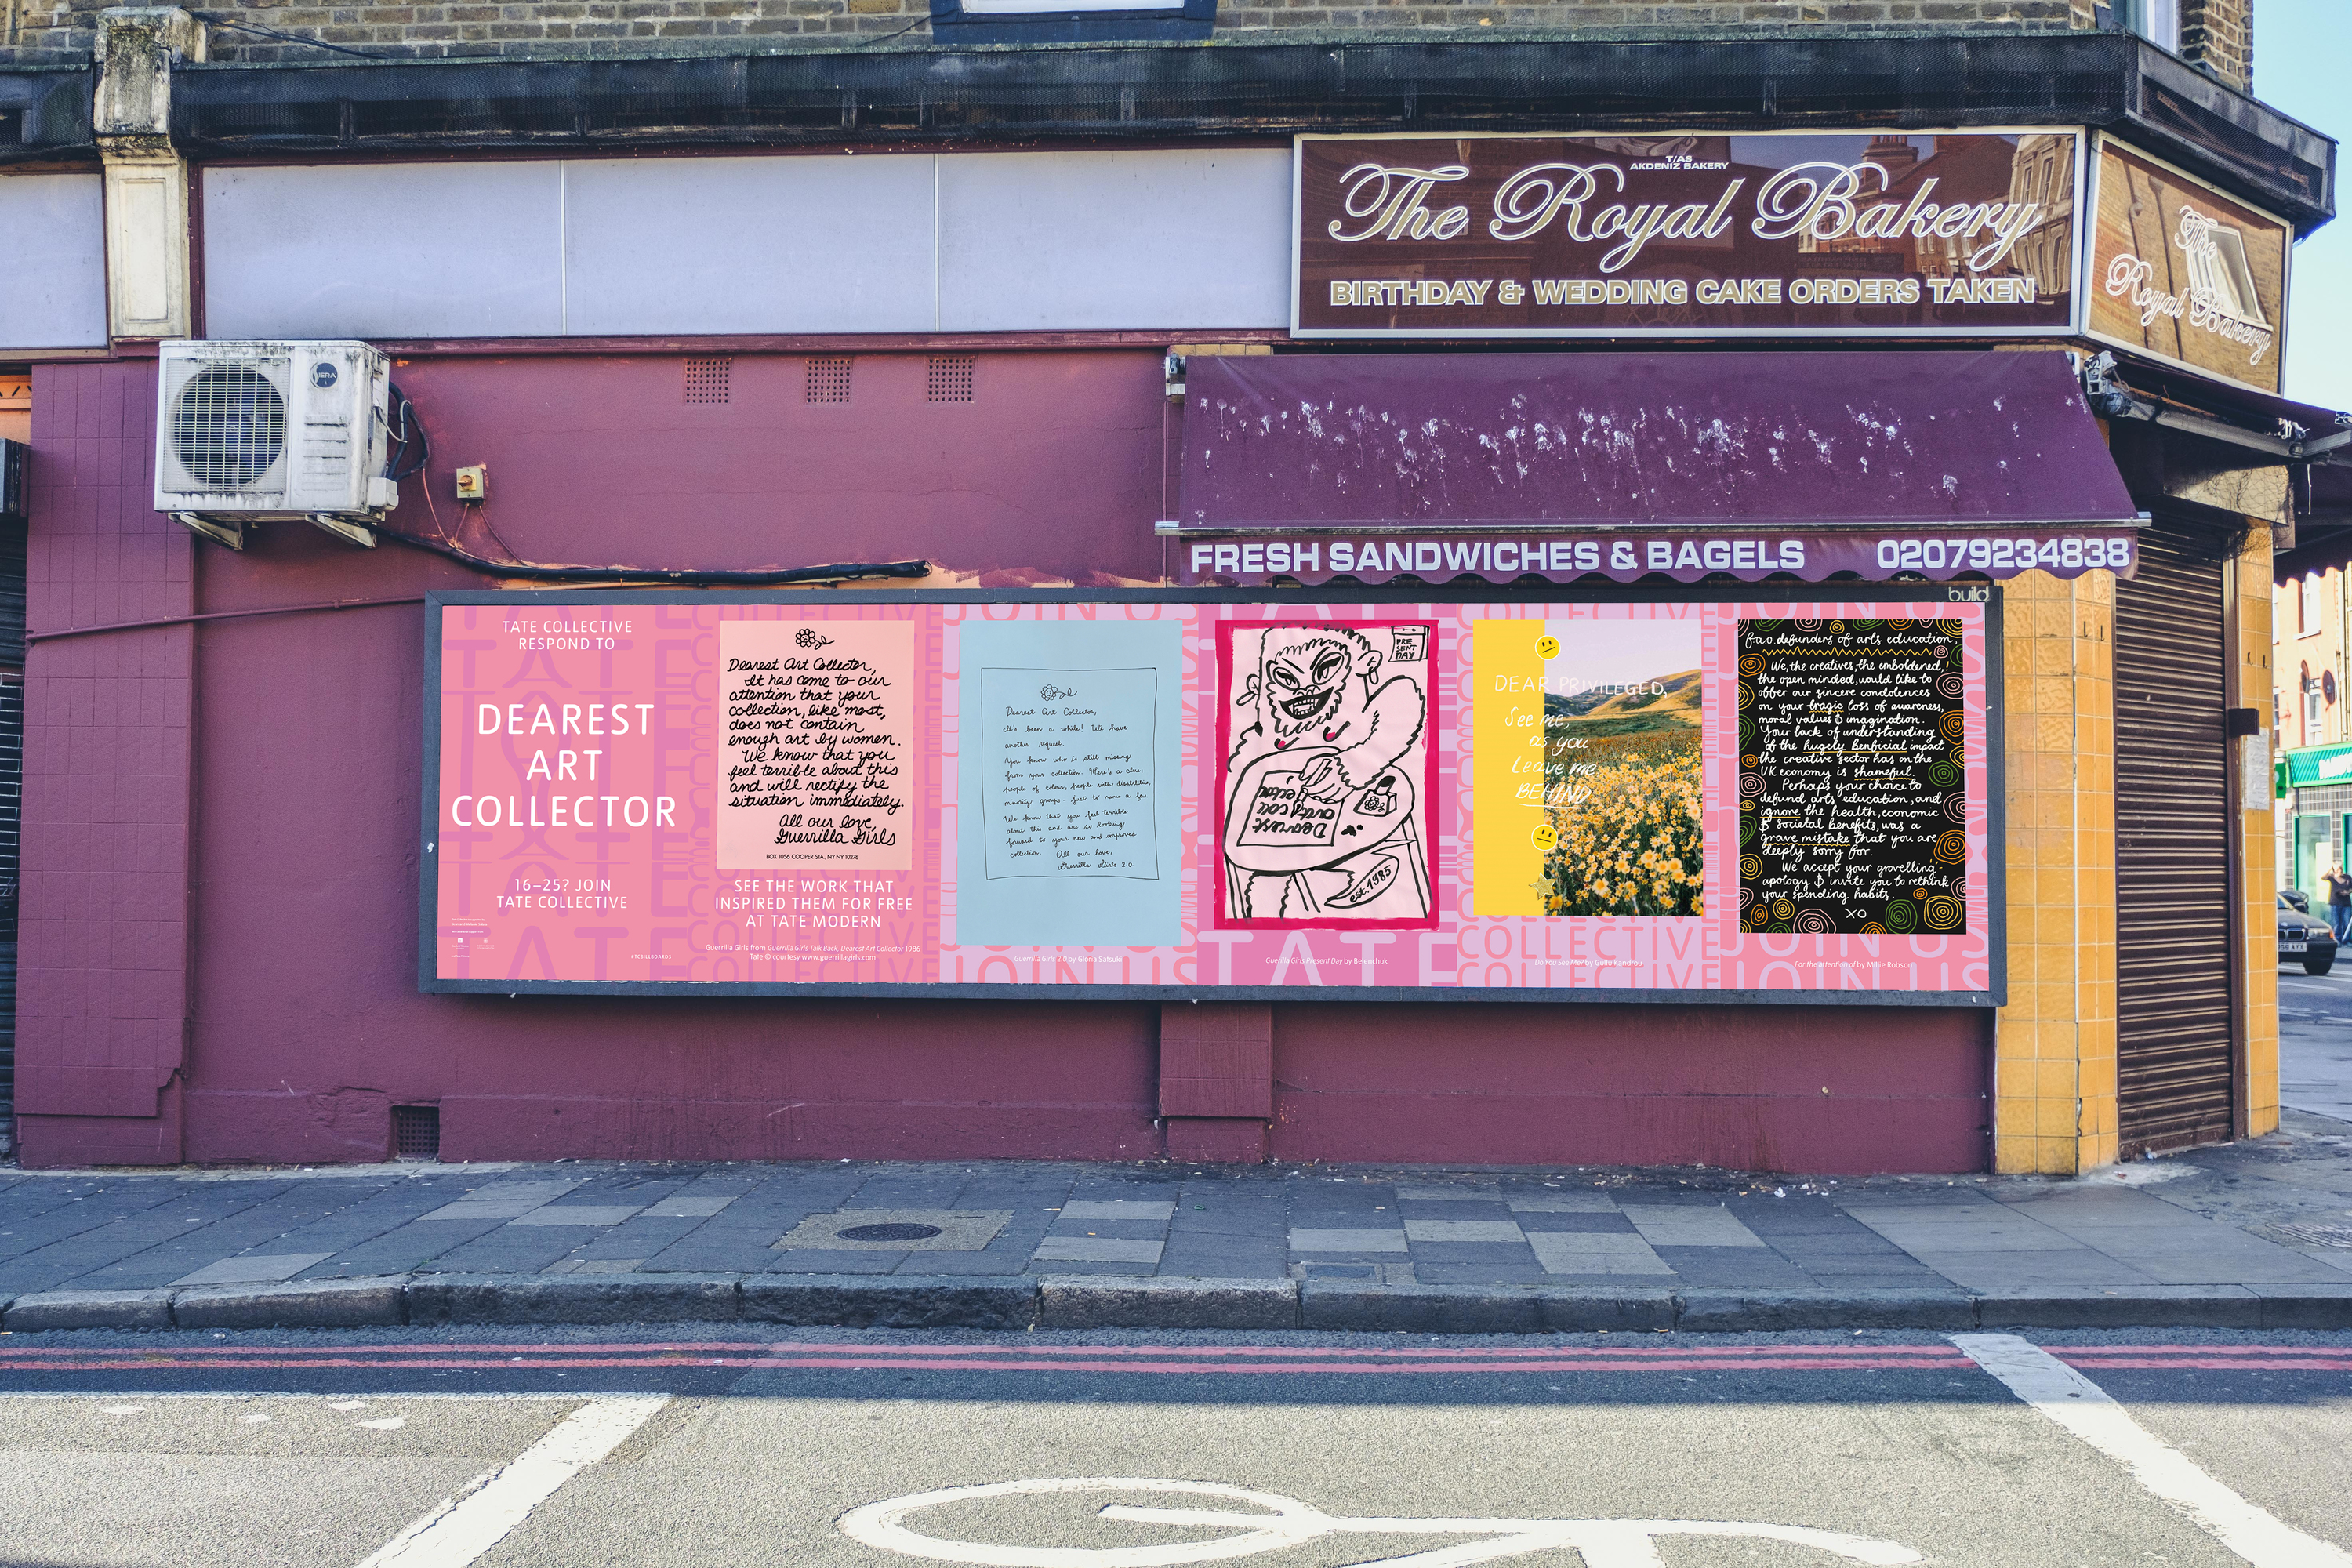 Tate has covered London's billboards with work by up-and-coming artists